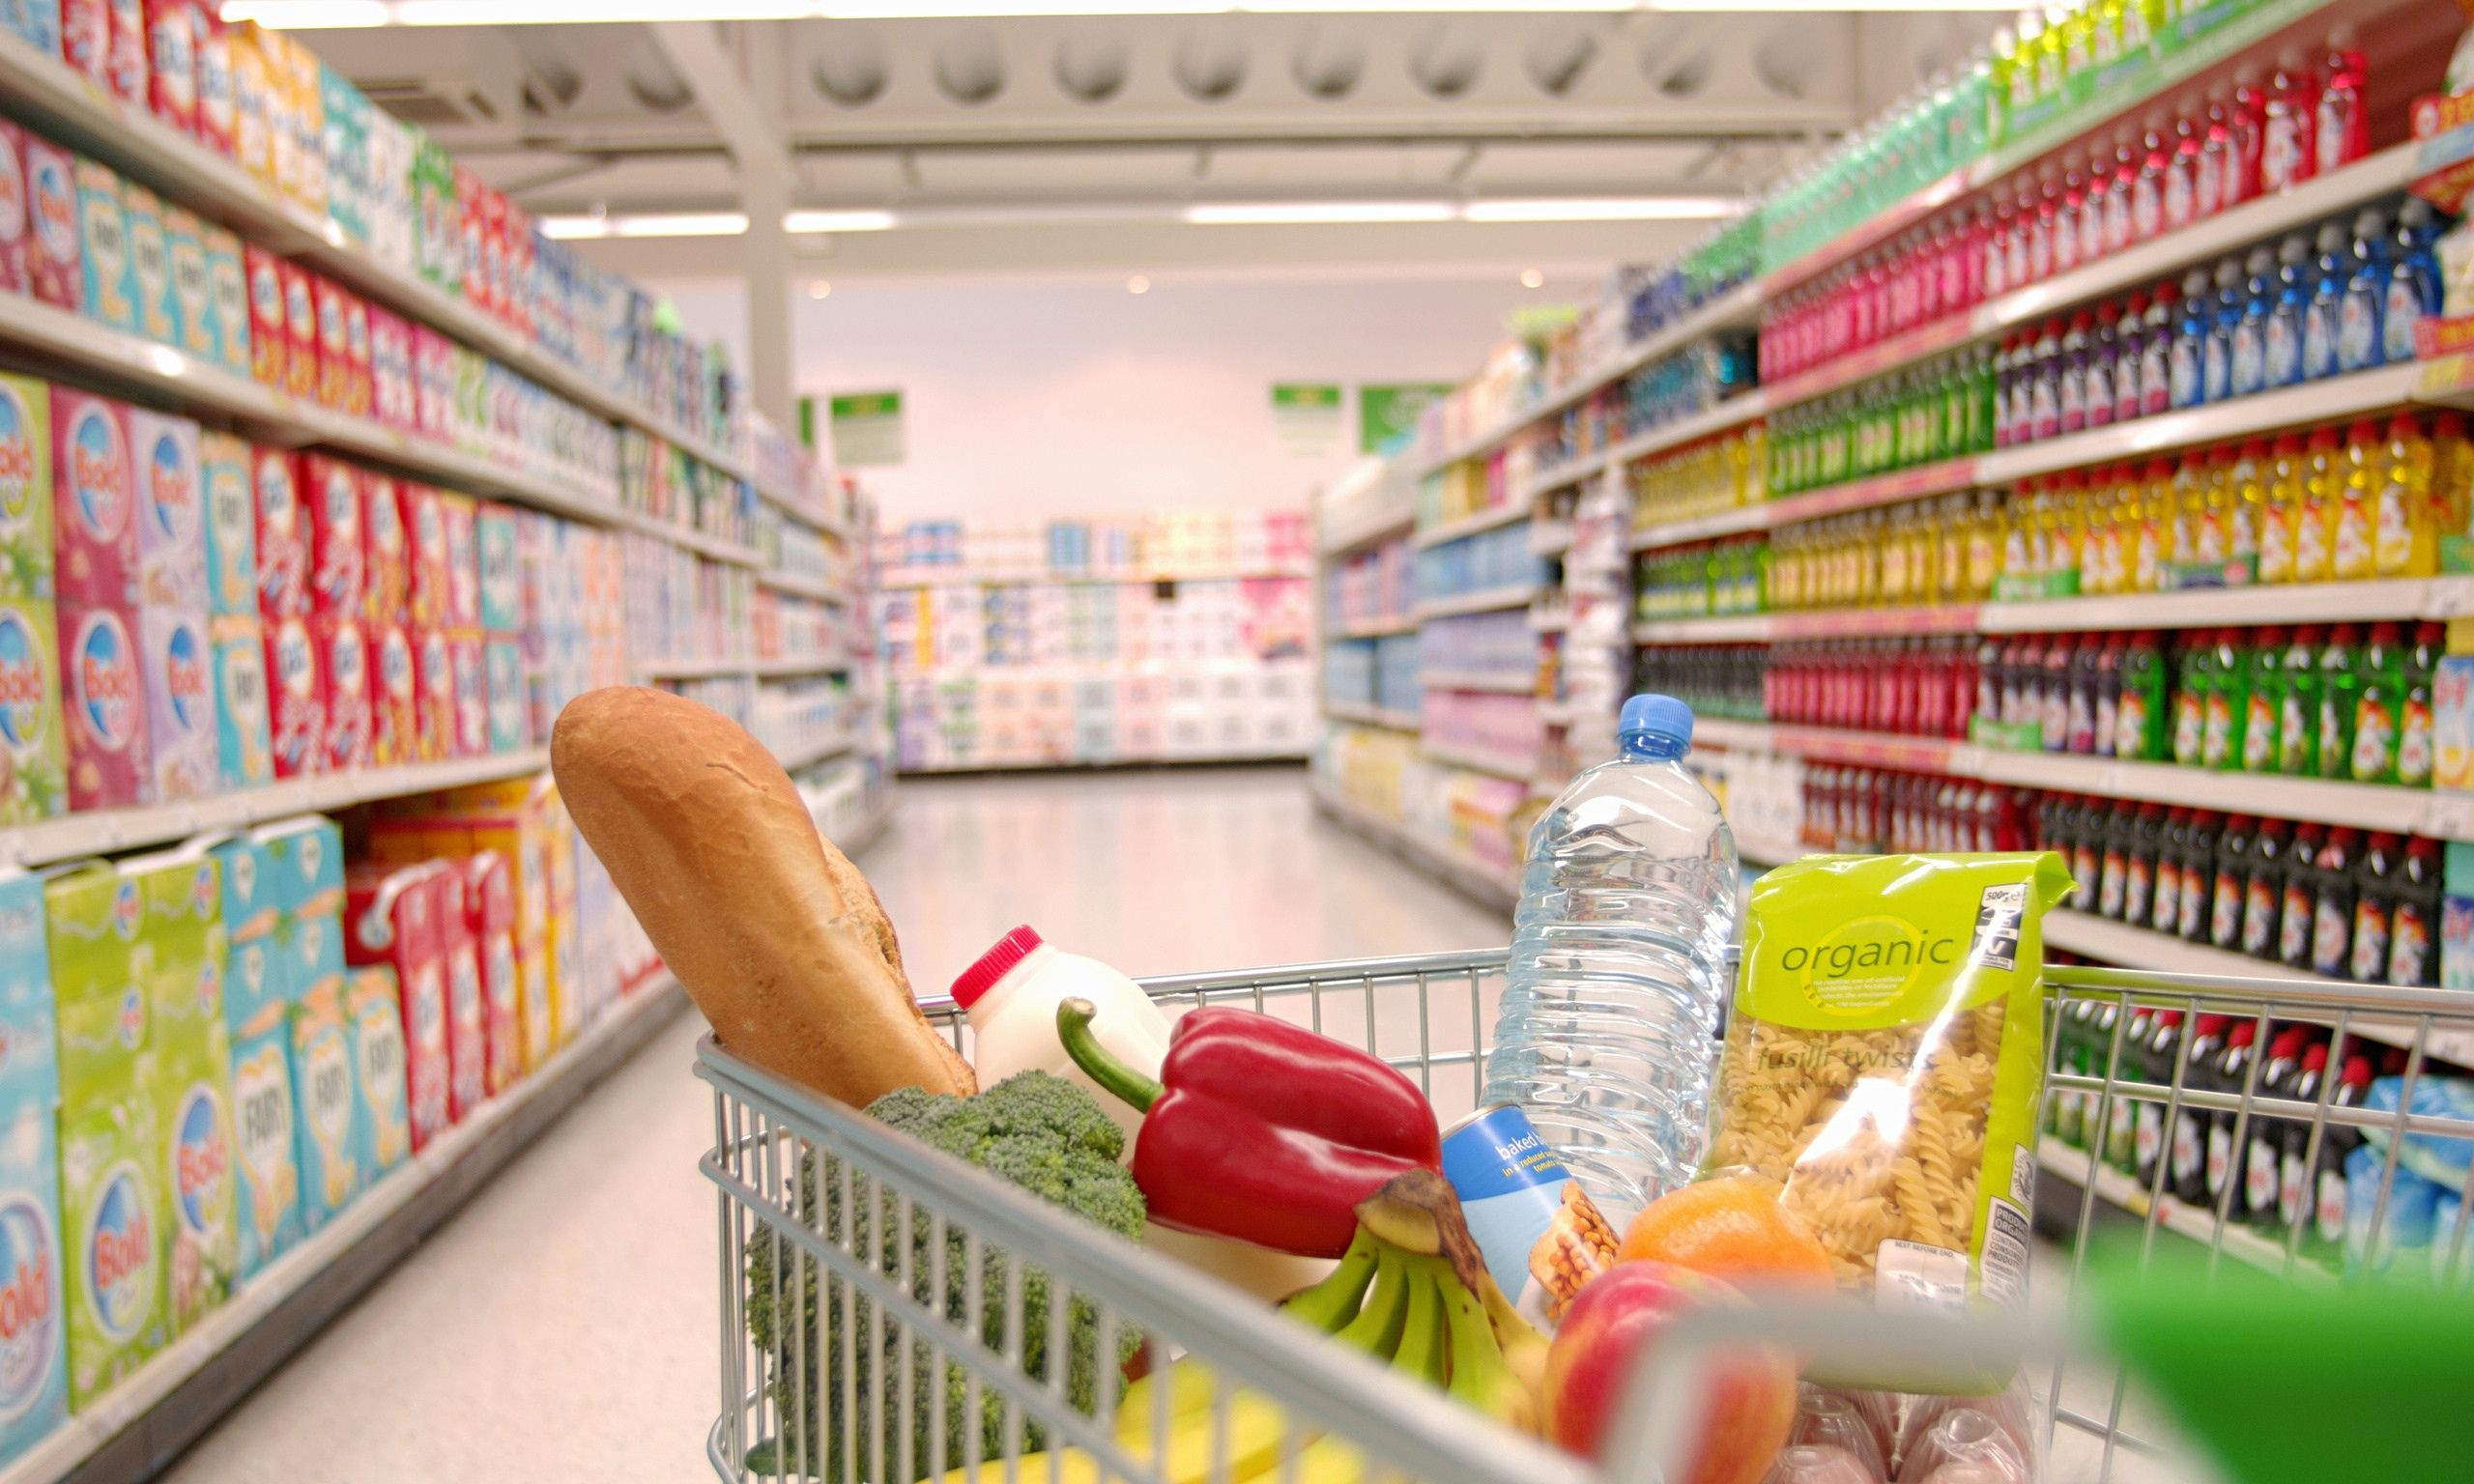 Check List: Find Your Needs Quickly at Supermarkets in Abu Dhabi